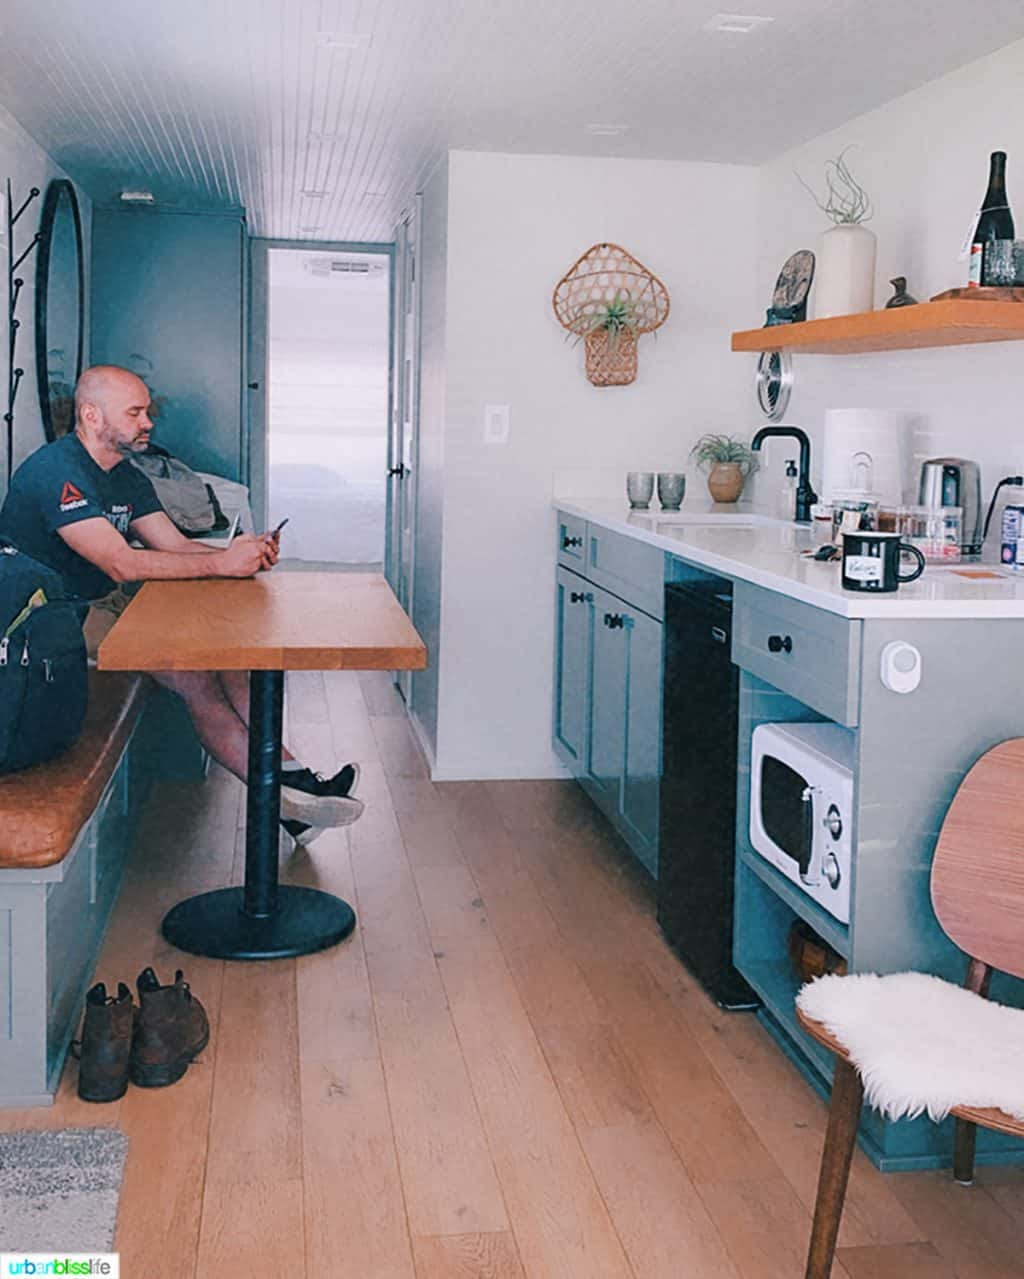 Alain Schotland inside the mansion airstream at Vintages Trailer Resort